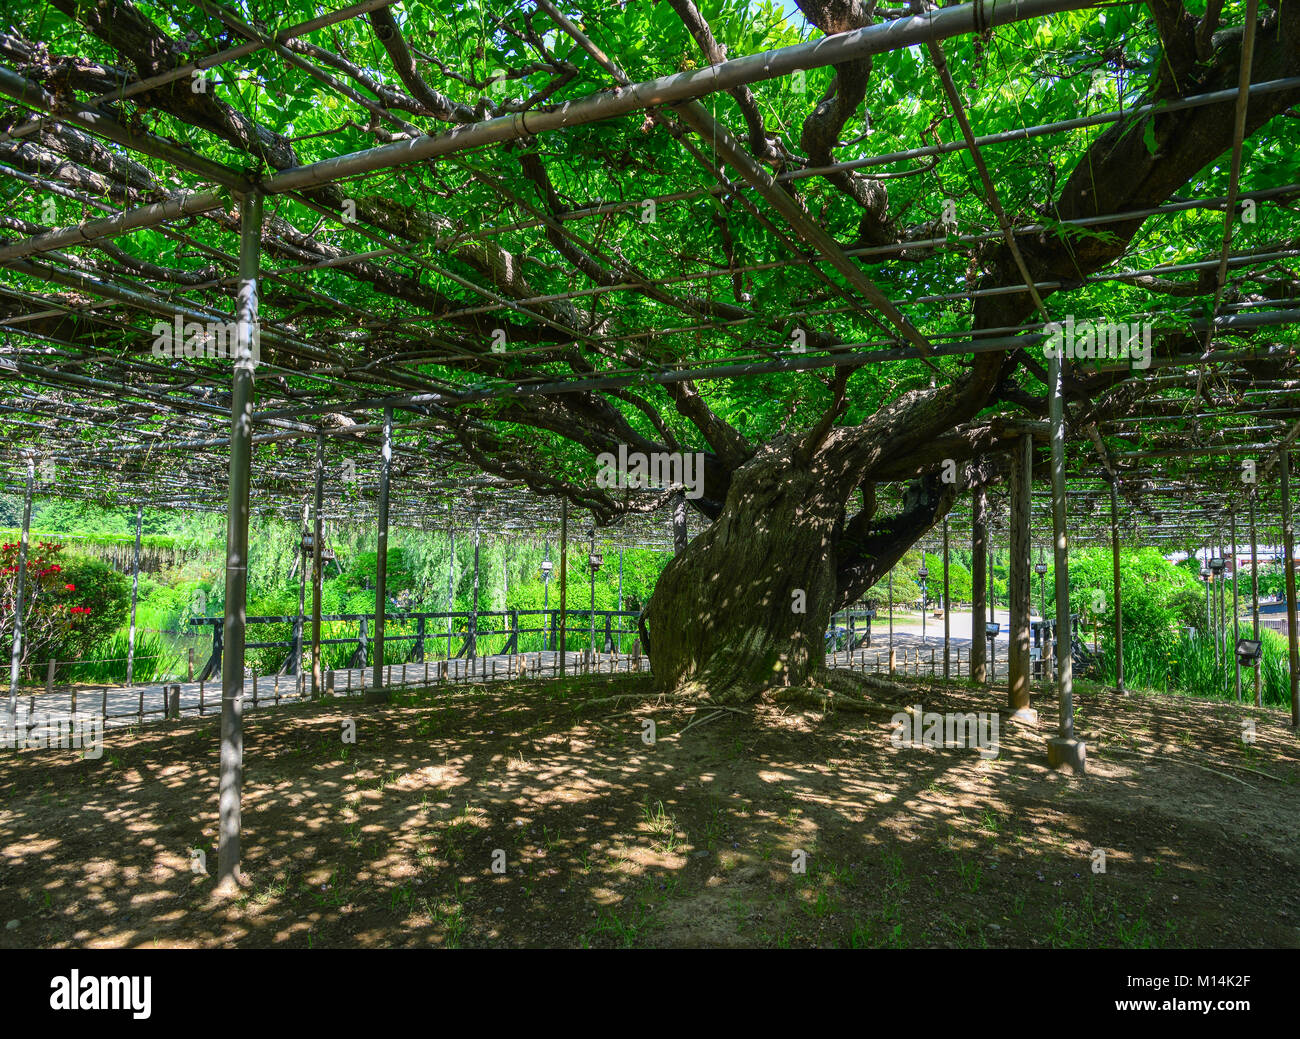 Great Wisteria tree at the park in Tochigi, Japan. - Stock Image